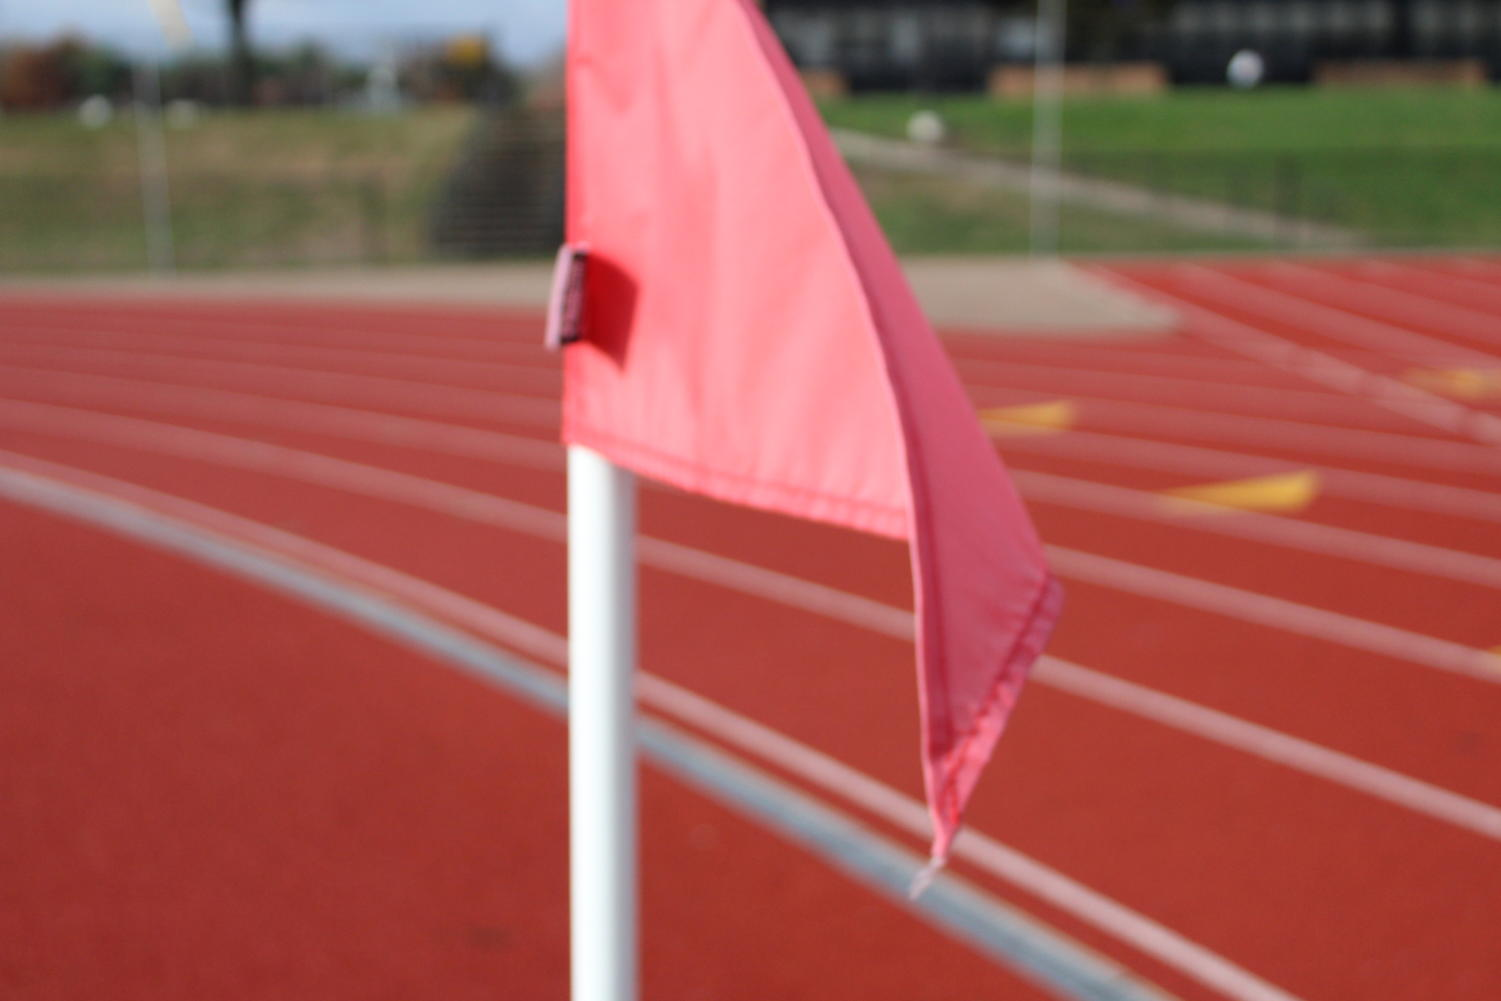 The red flag on the track